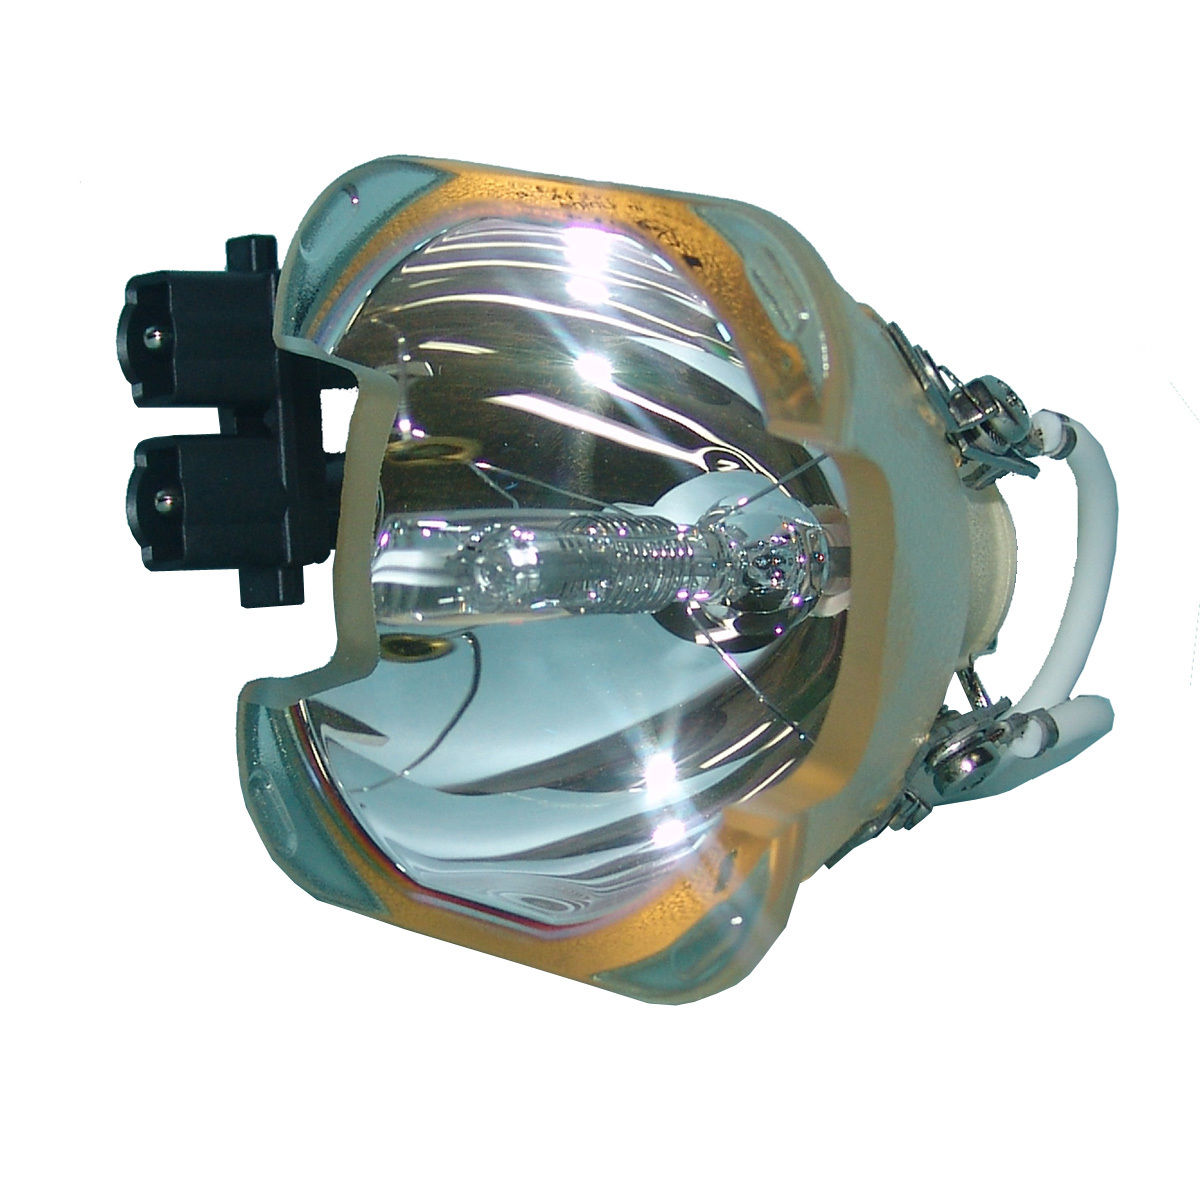 Compatible Bare Bulb BL-FU250A BLFU250A SP.86501.001 for Optoma EP755A / H56A Projector Lamp Bulb without housing compatible bare bulb for optoma bl fu180b projector lamp